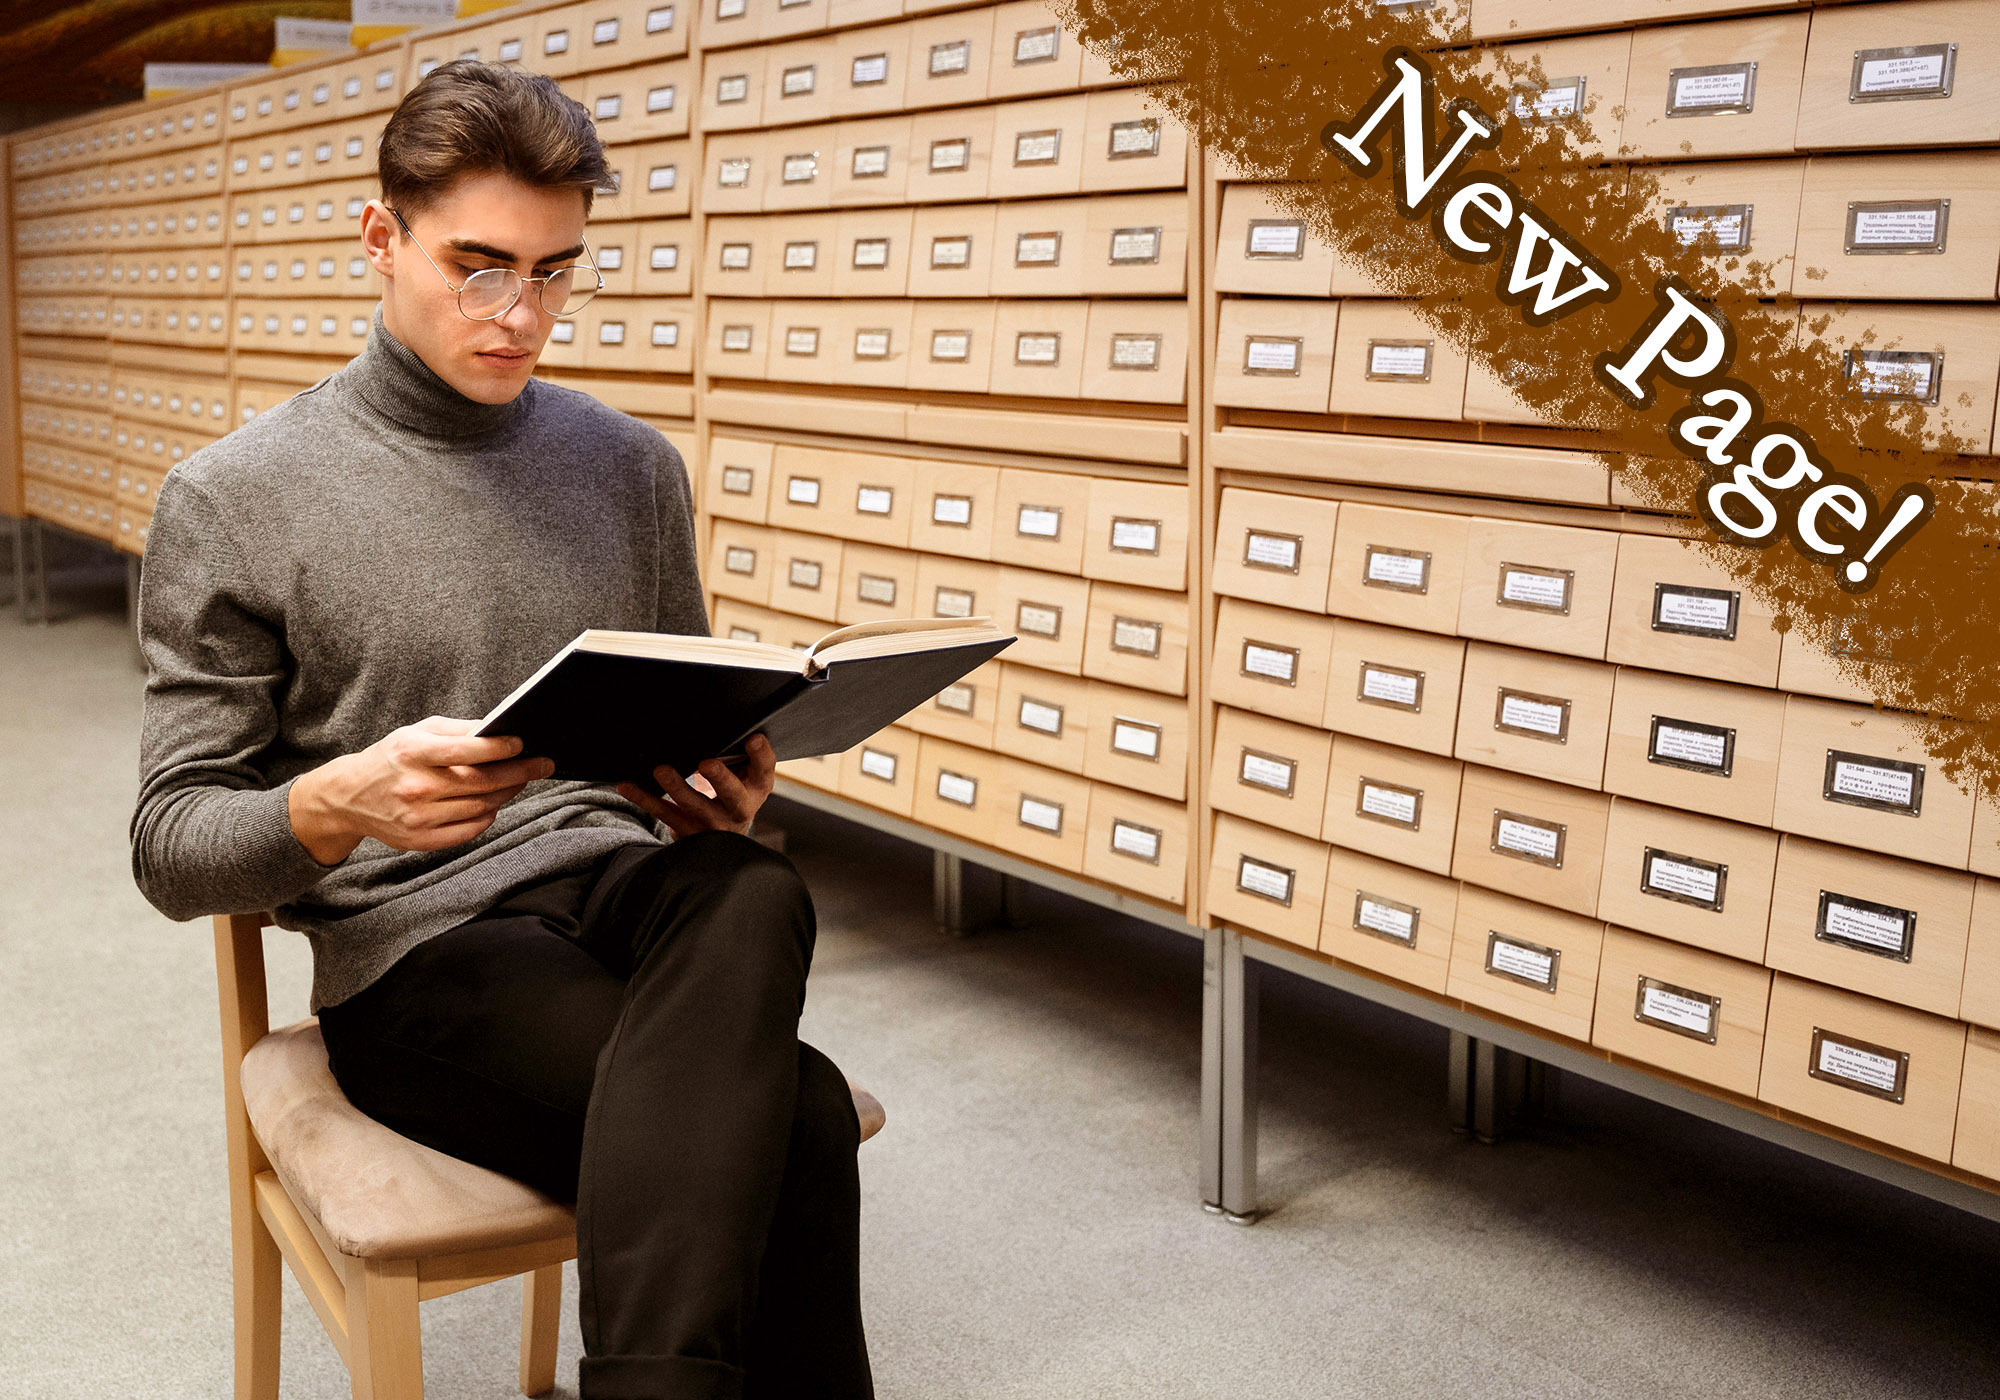 Young white man with a septum piercing reading a book in a room full of file cabinets